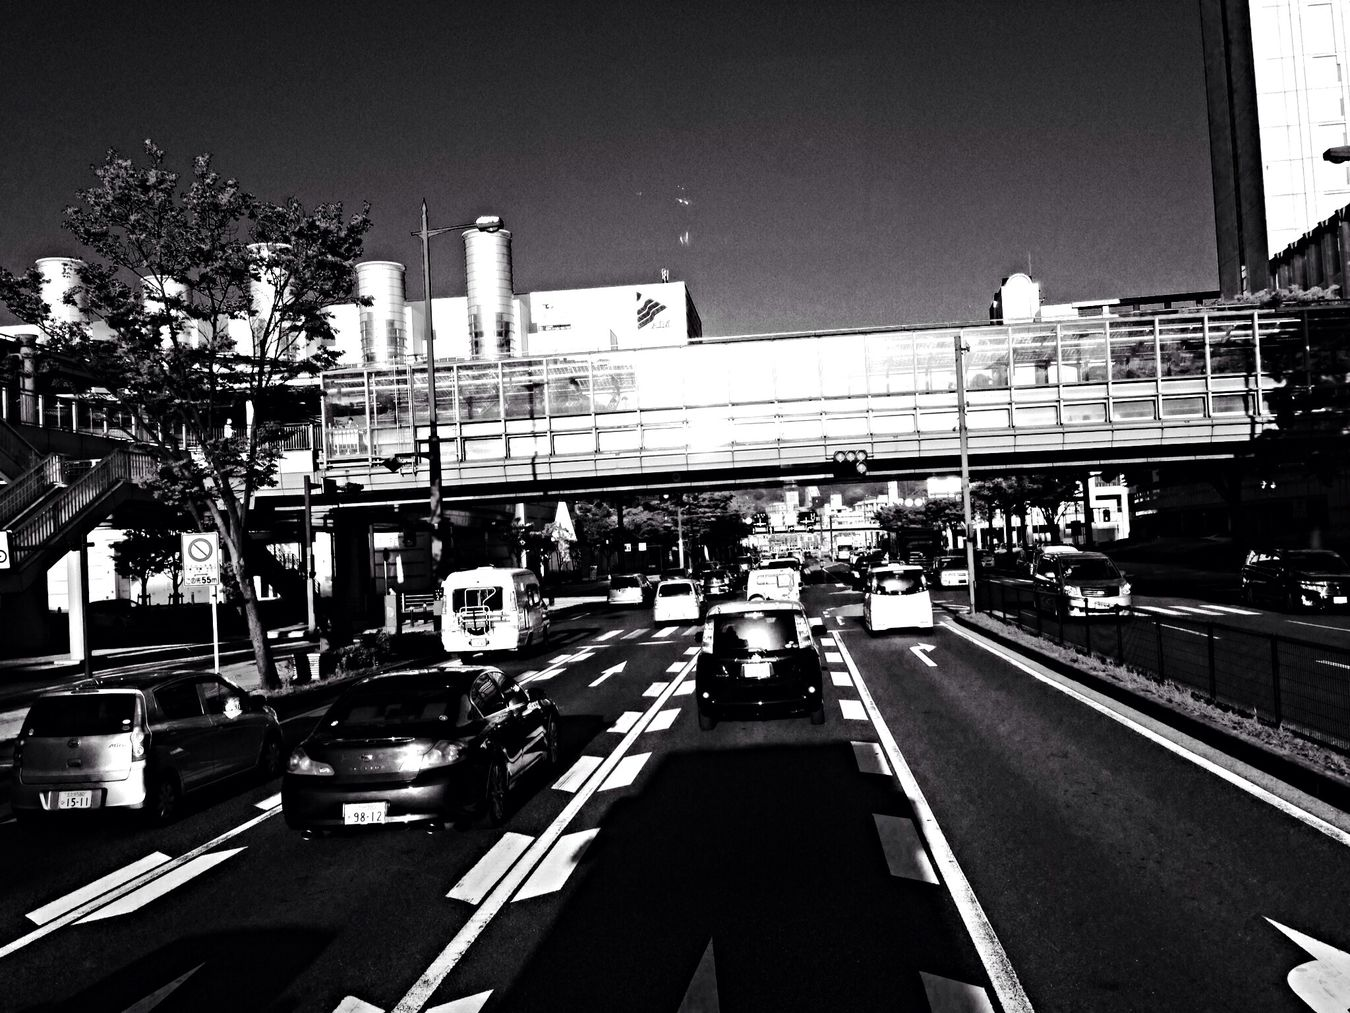 Monochrome Black And White On The Road